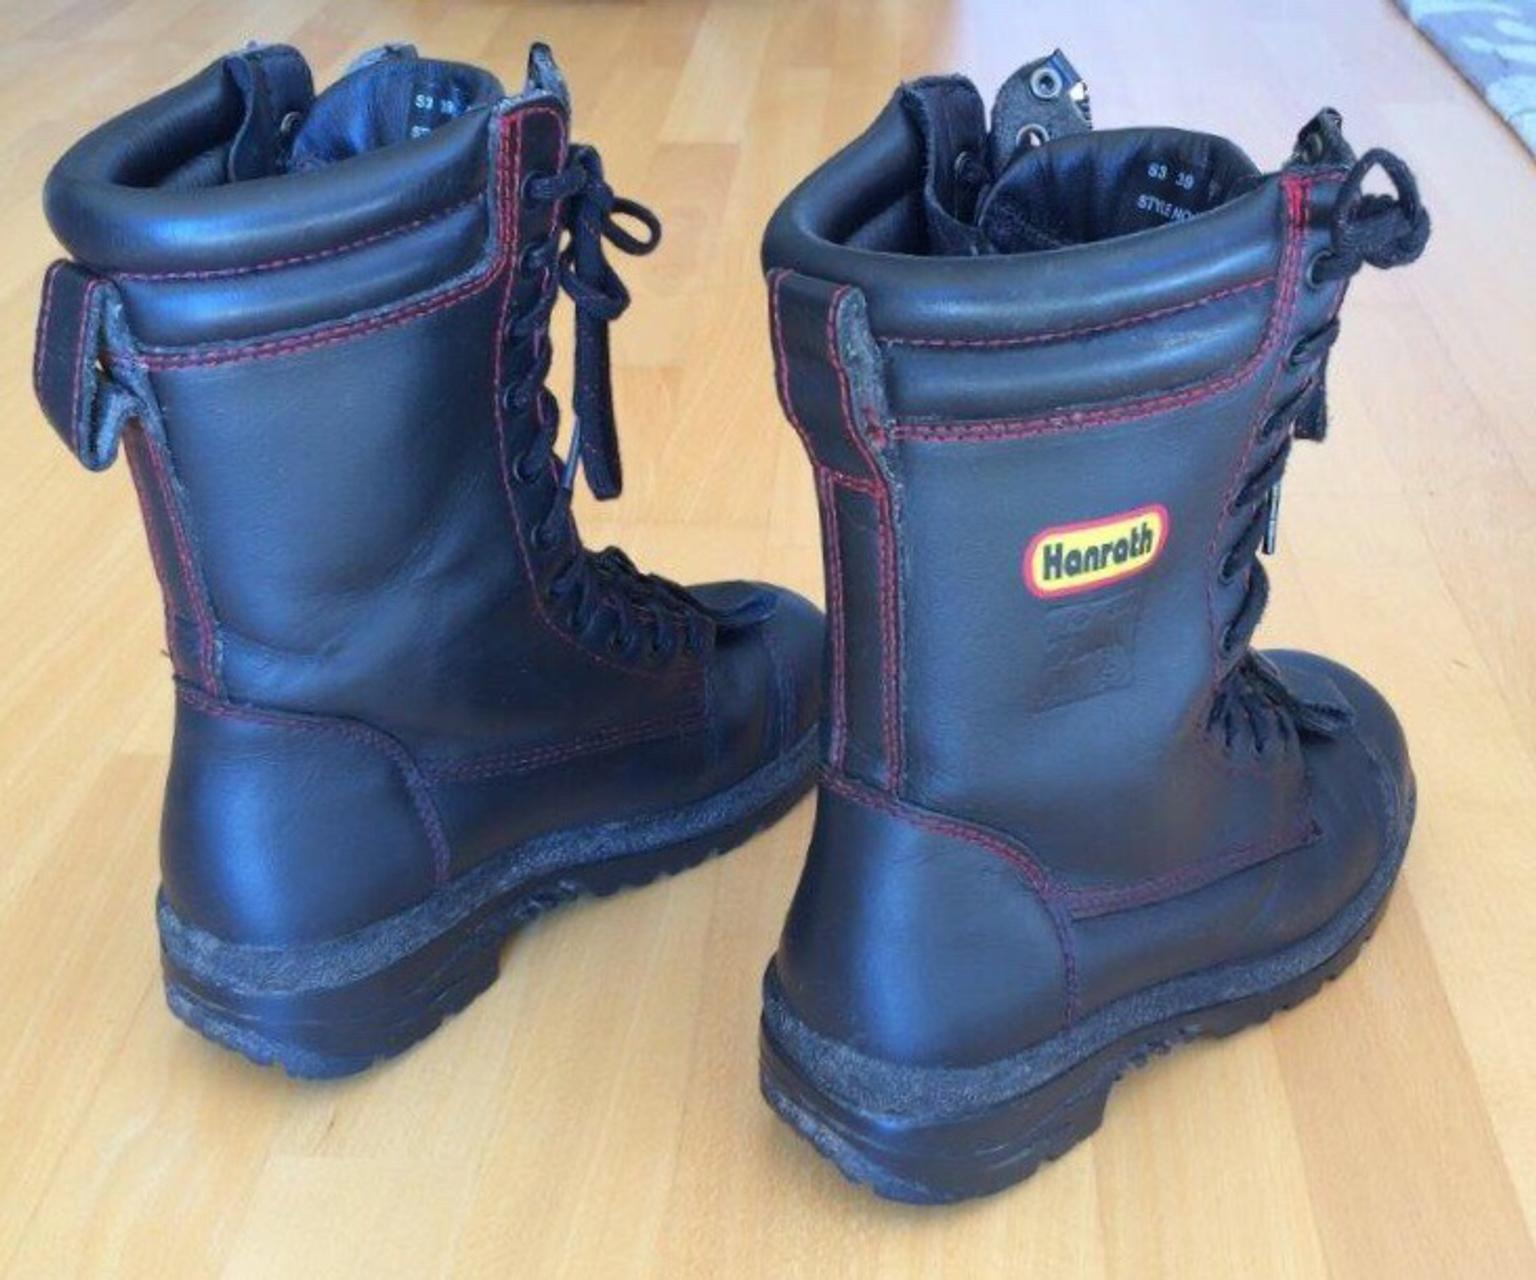 Feuerwehrstiefel Hanrath Gr. 39 in 82335 Berg for €40.00 for